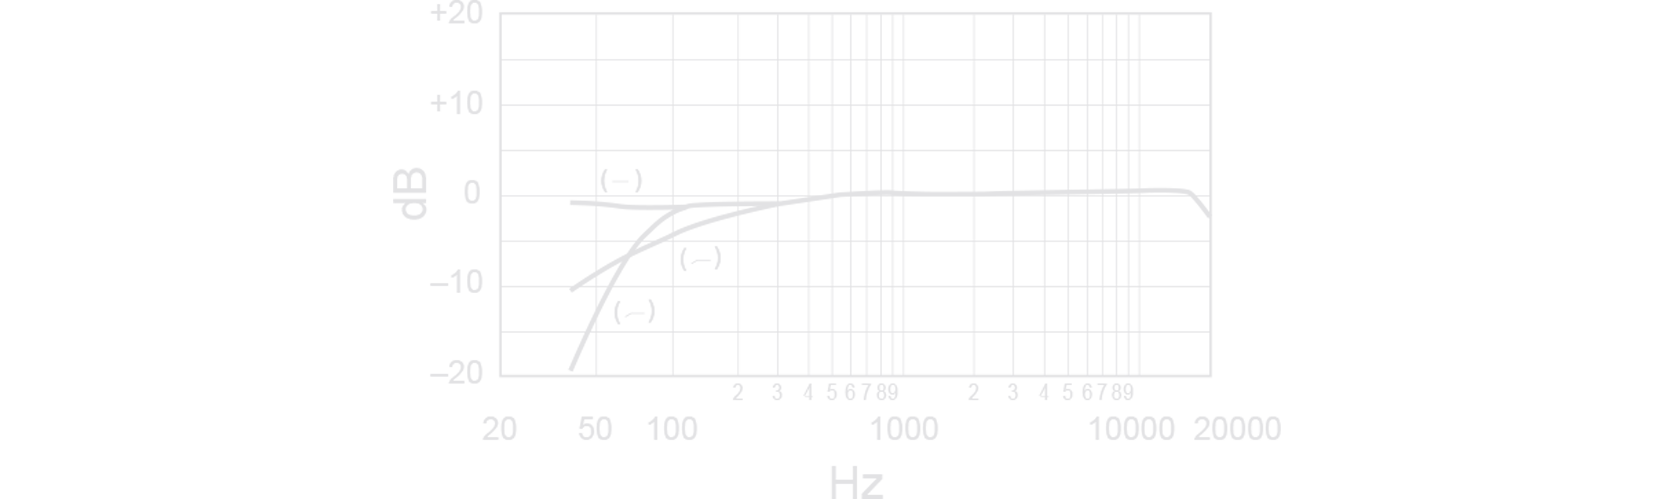 Shure Condenser Instrument Microphone                    Frequency Response Curve Image